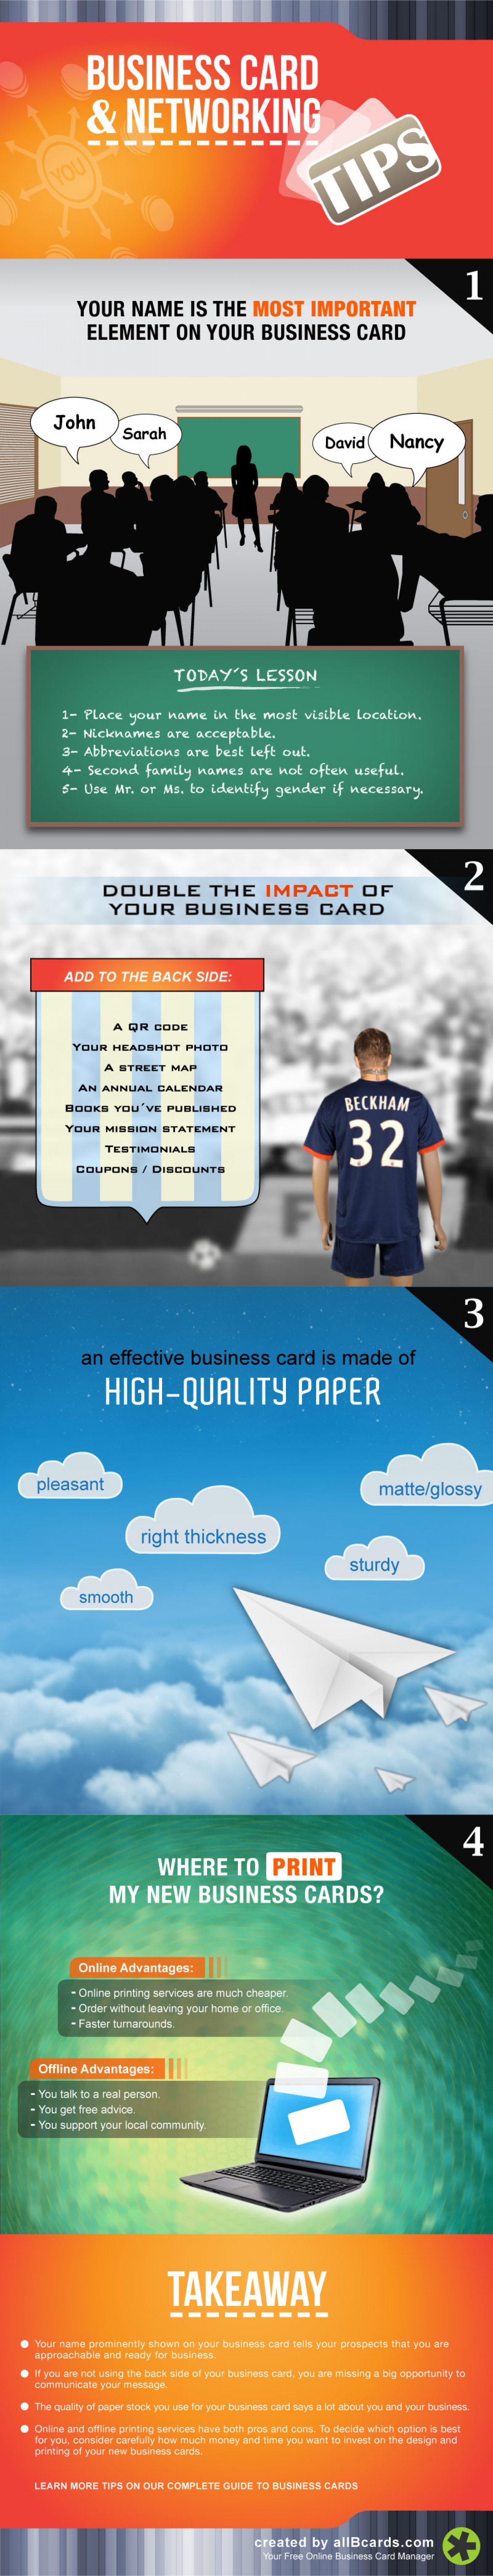 The ABCs of a Successful Business Card Infographic